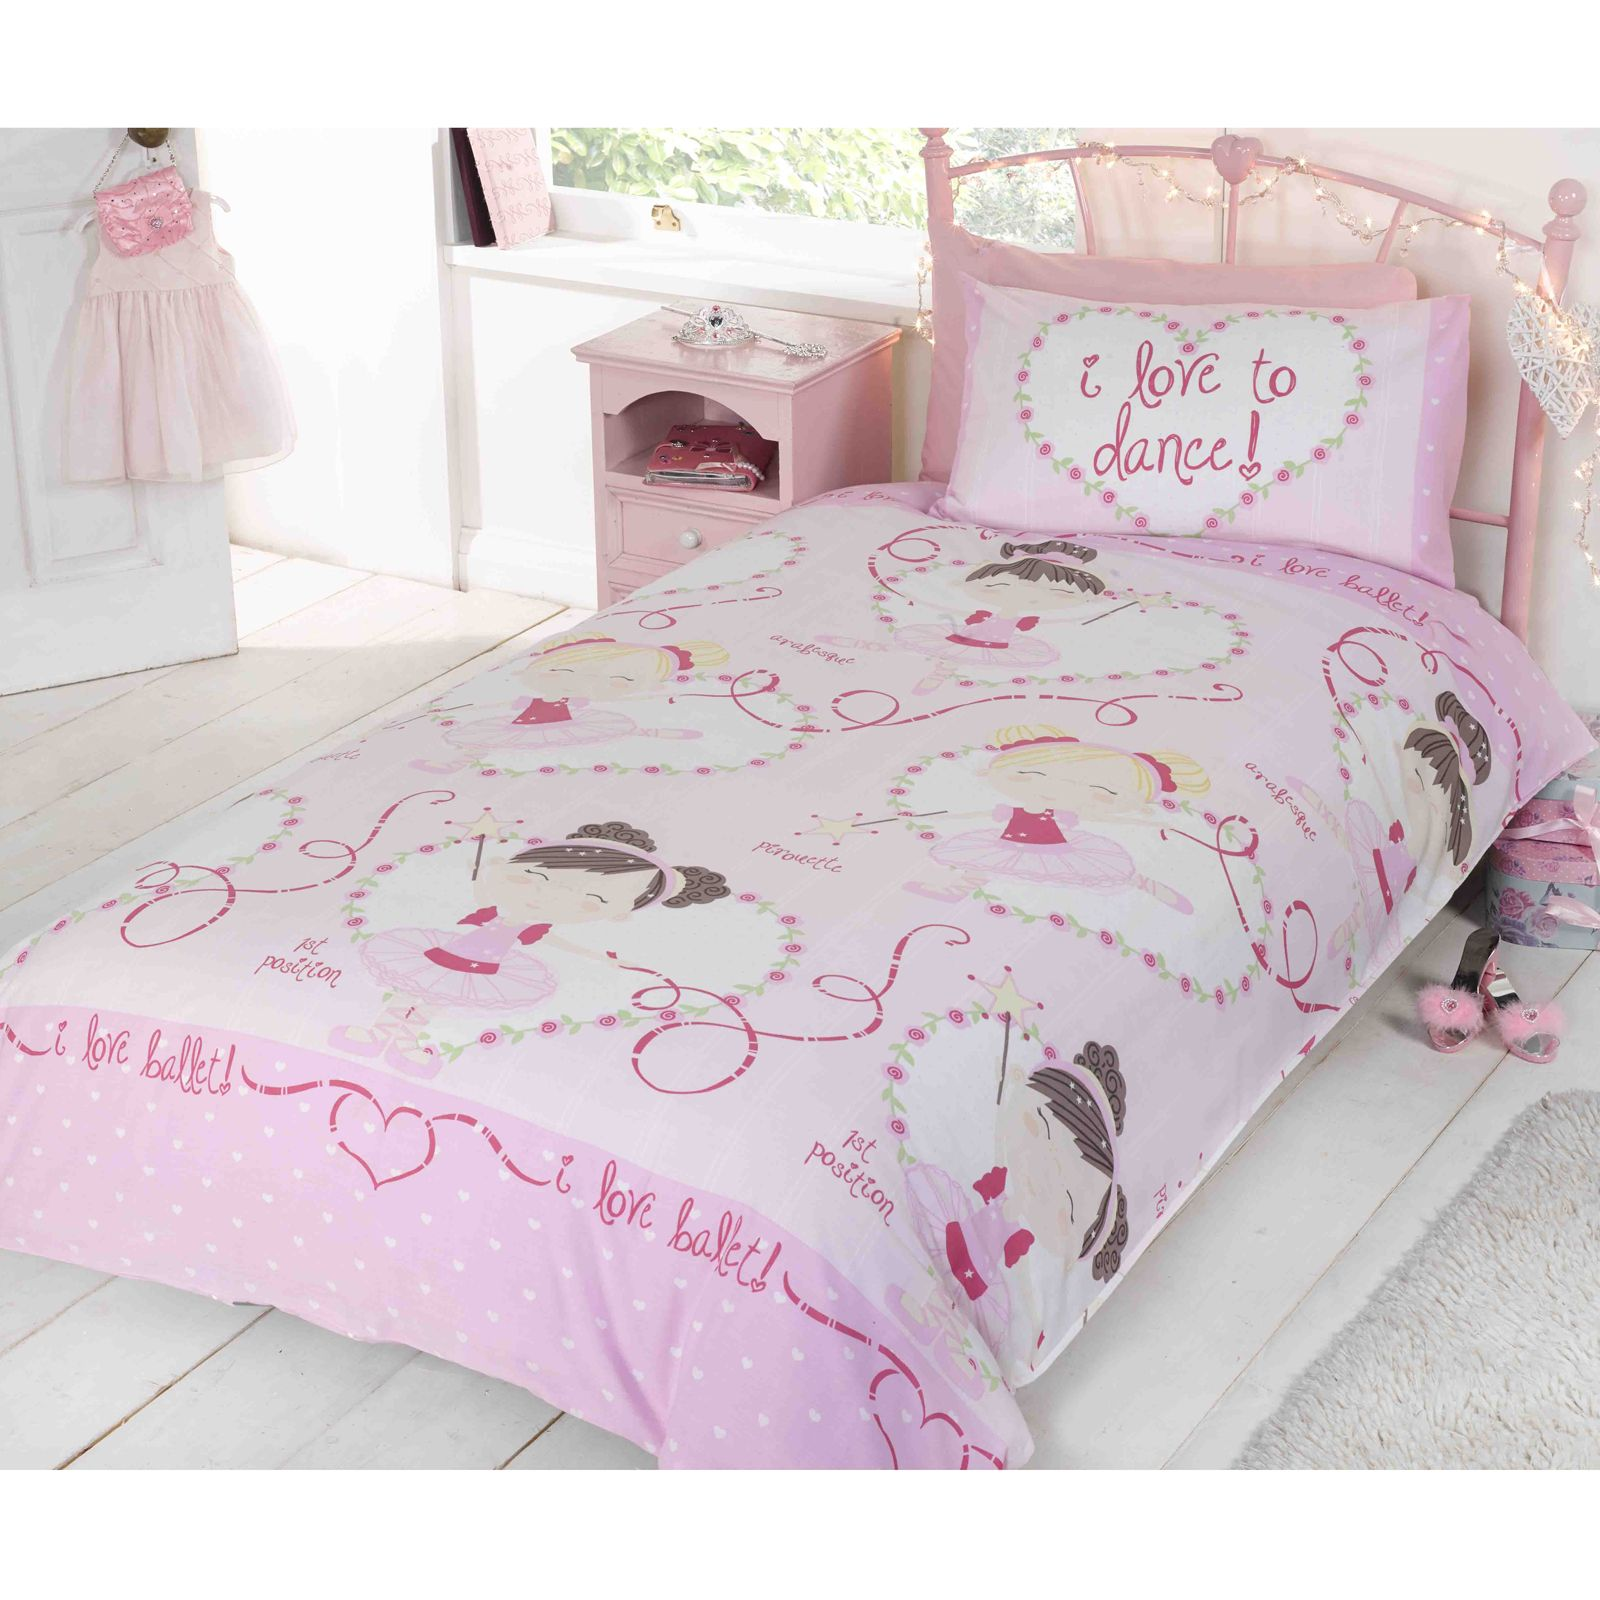 love to dance ballerine set housse de couette simple ballet literie ebay. Black Bedroom Furniture Sets. Home Design Ideas